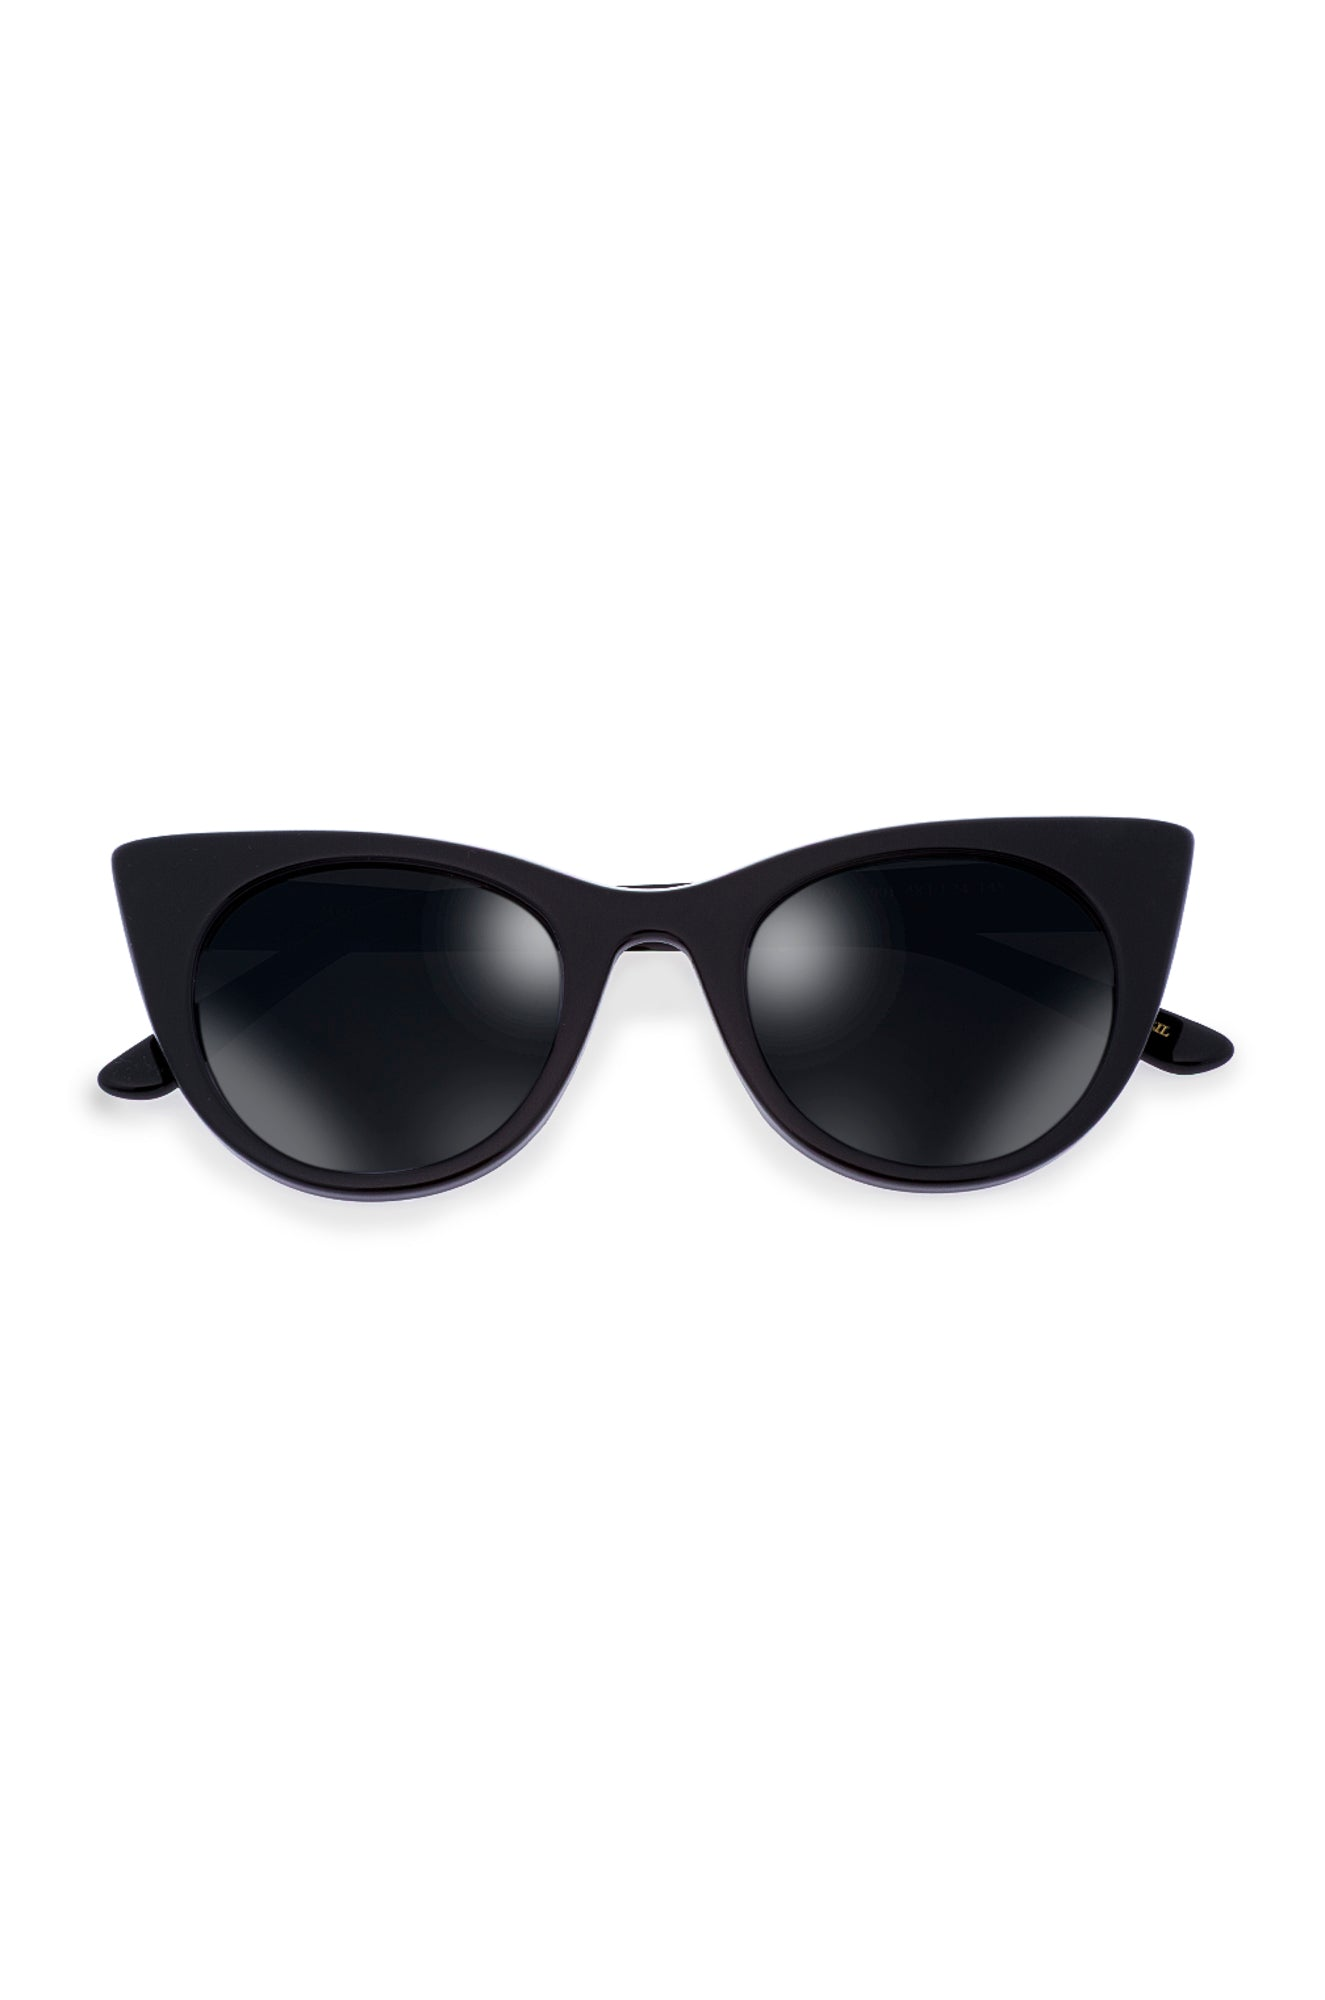 Black Doshow Cat-Eye Sunglasses with Mirrored Lens